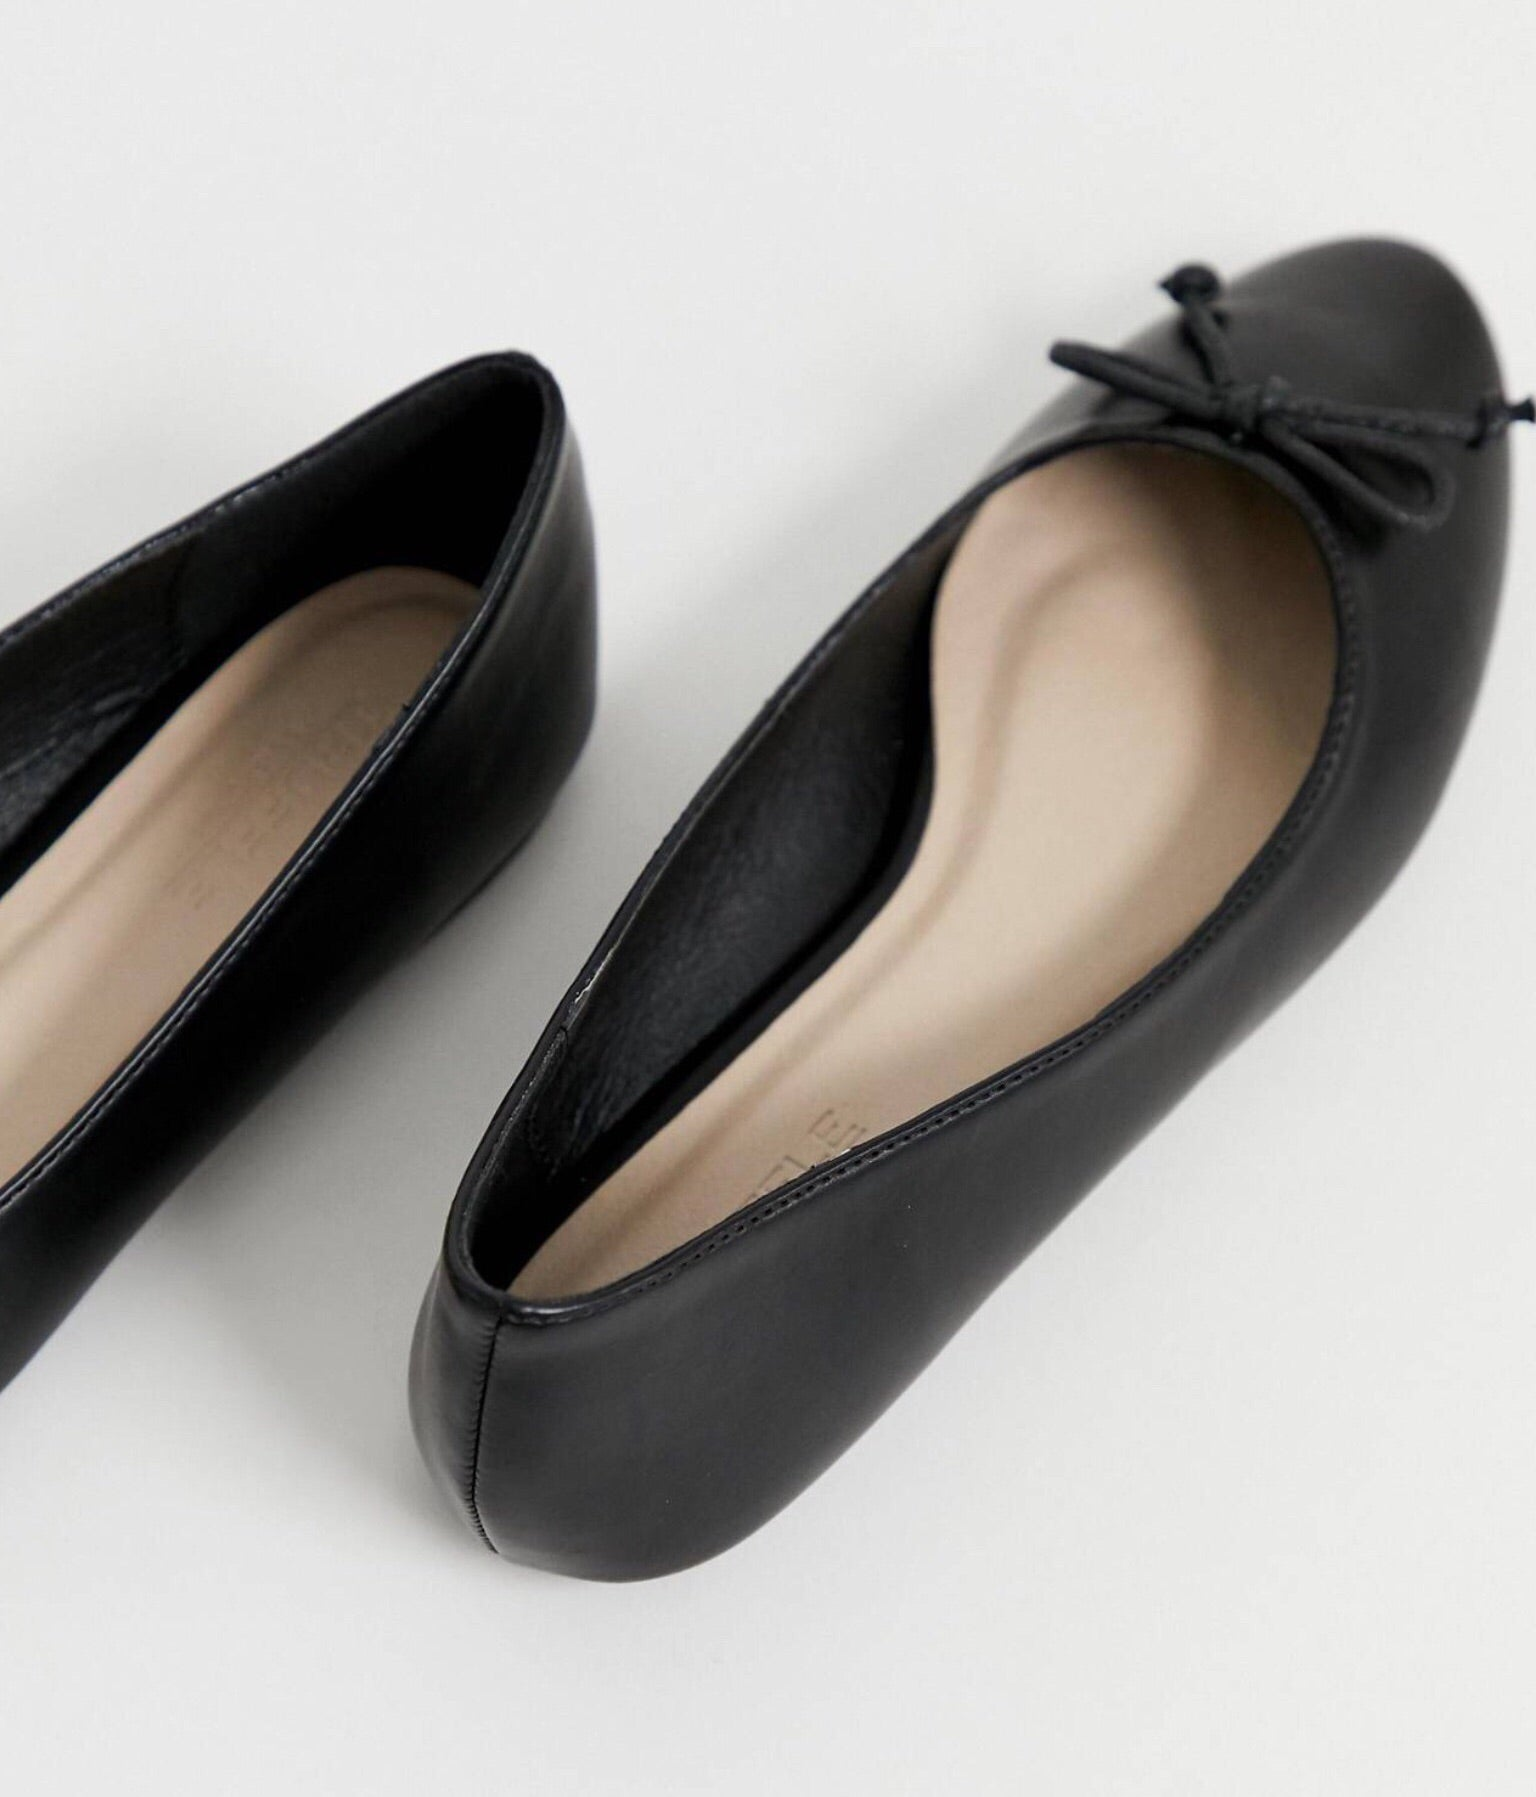 TRUFFLE COLLECTION BALLET FLAT